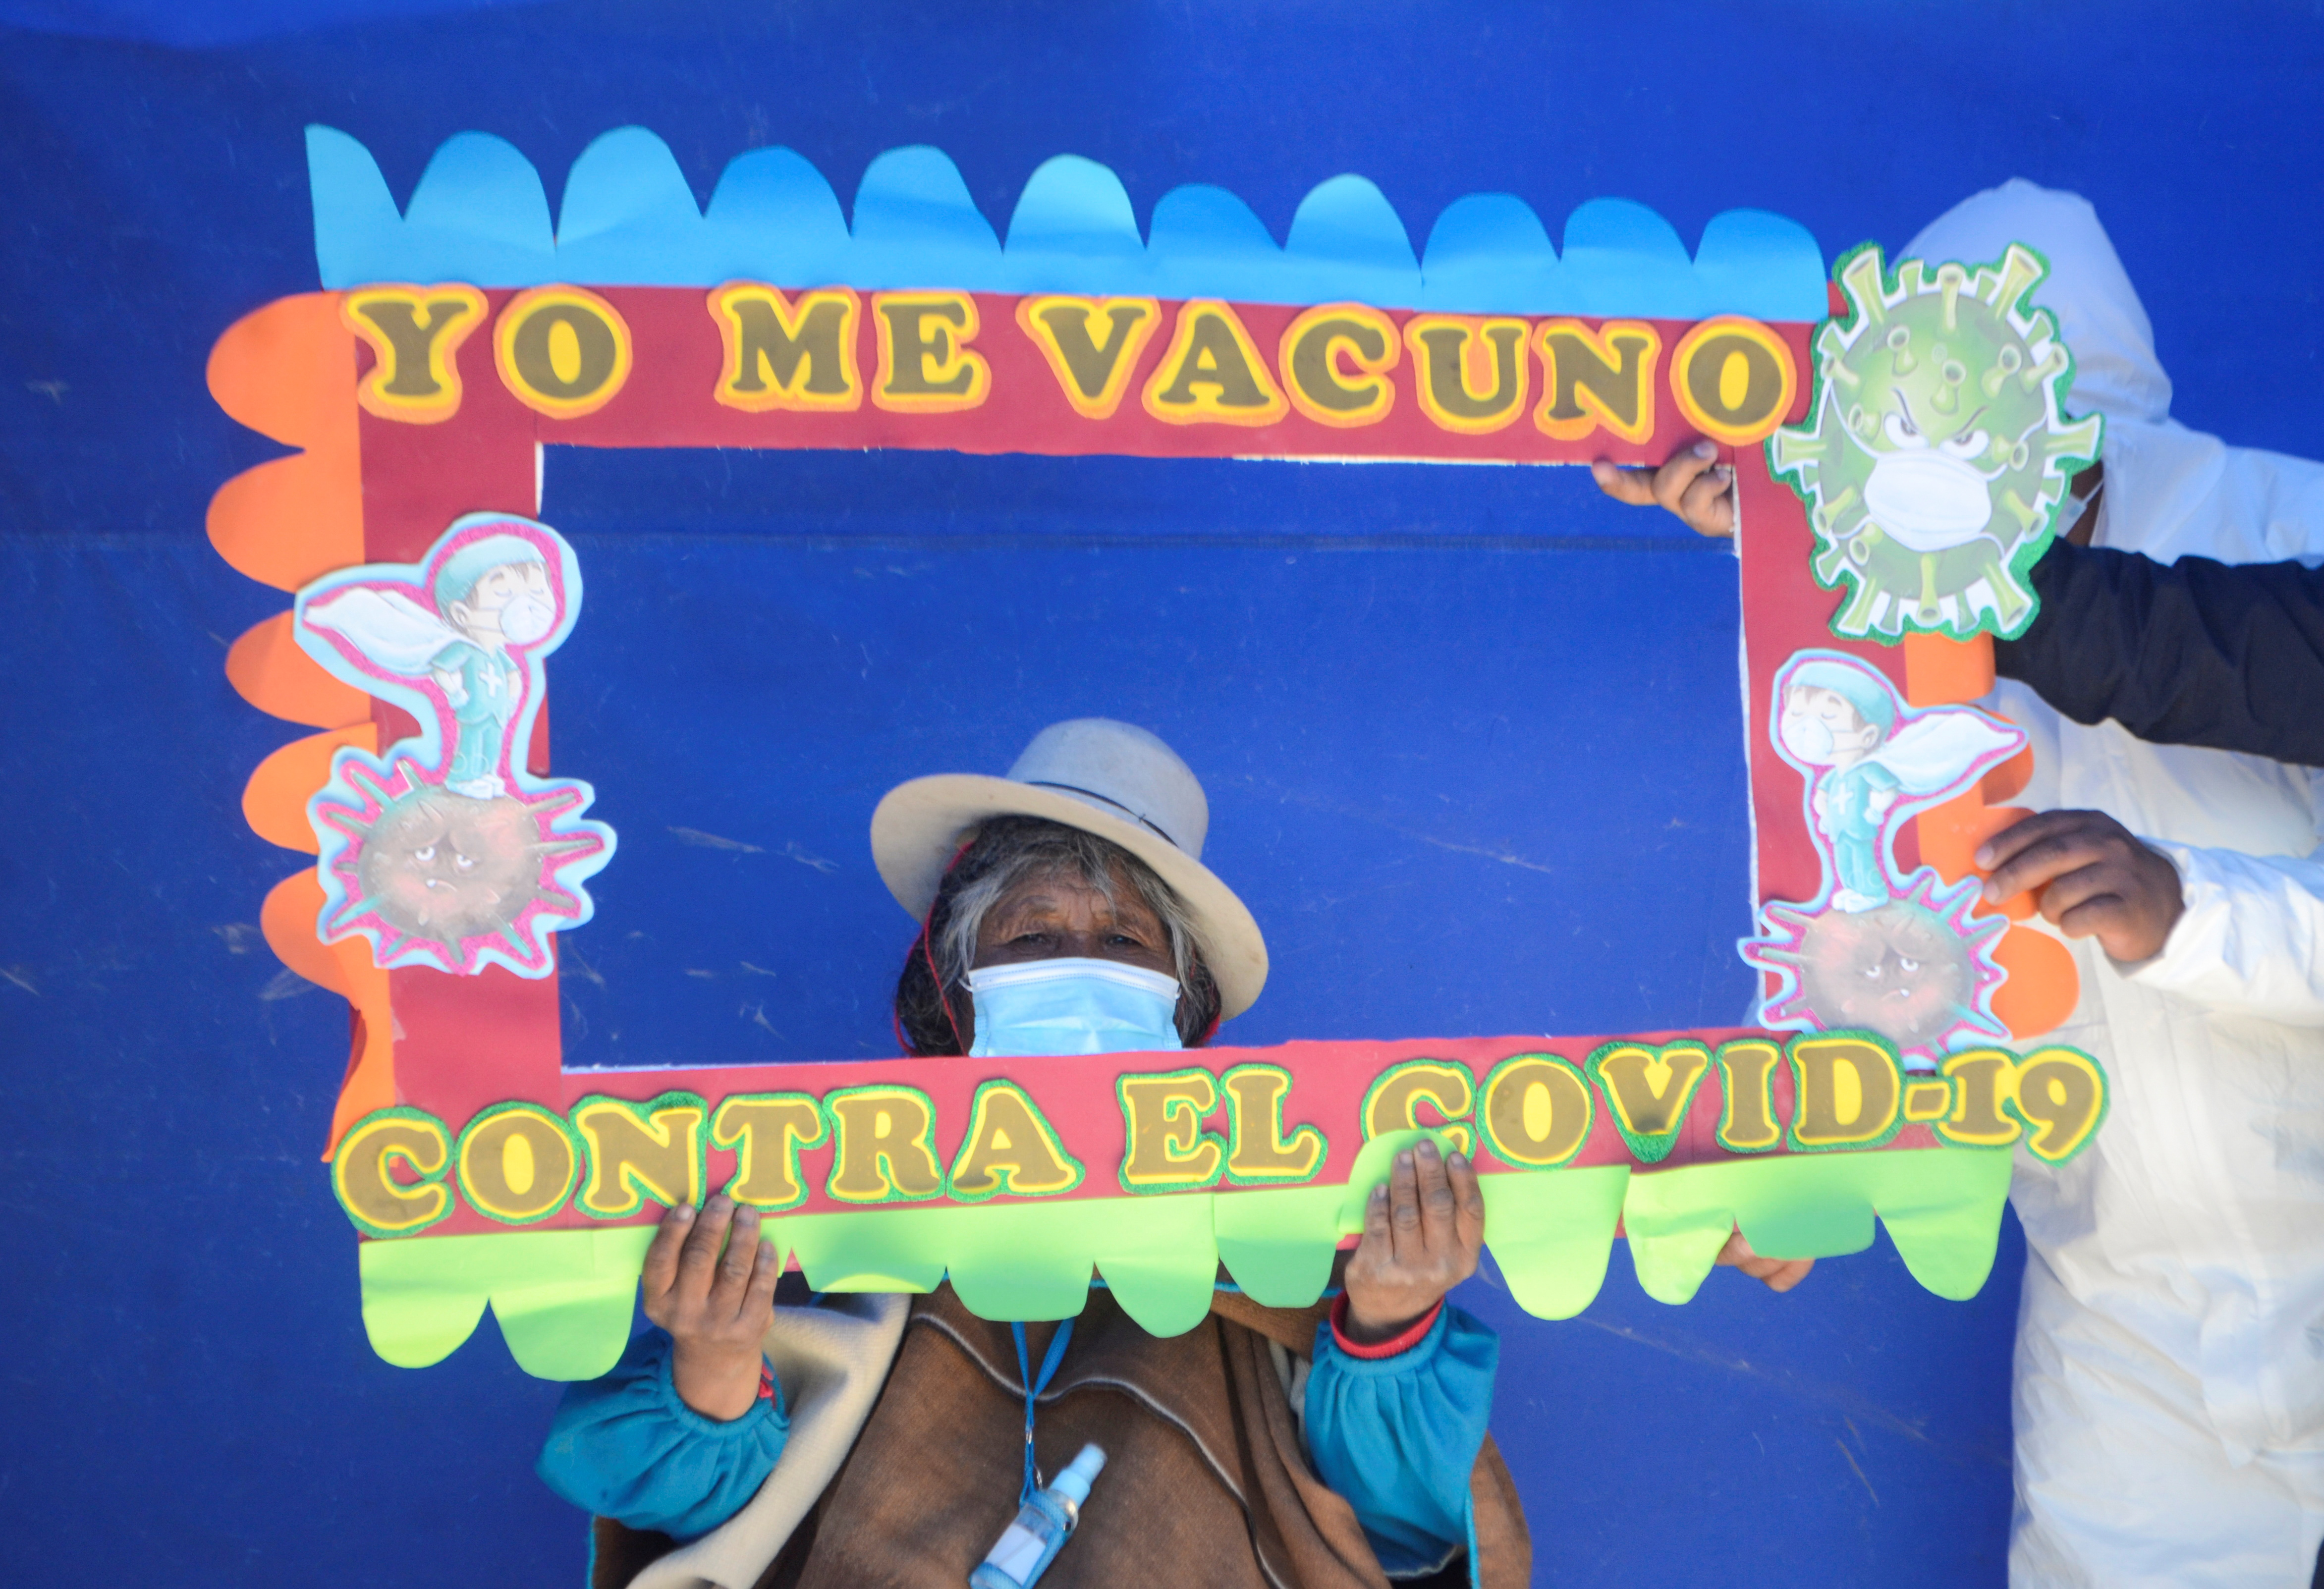 A woman who had previously received a vaccine against the coronavirus disease (COVID-19) is asked to hold a frame reading